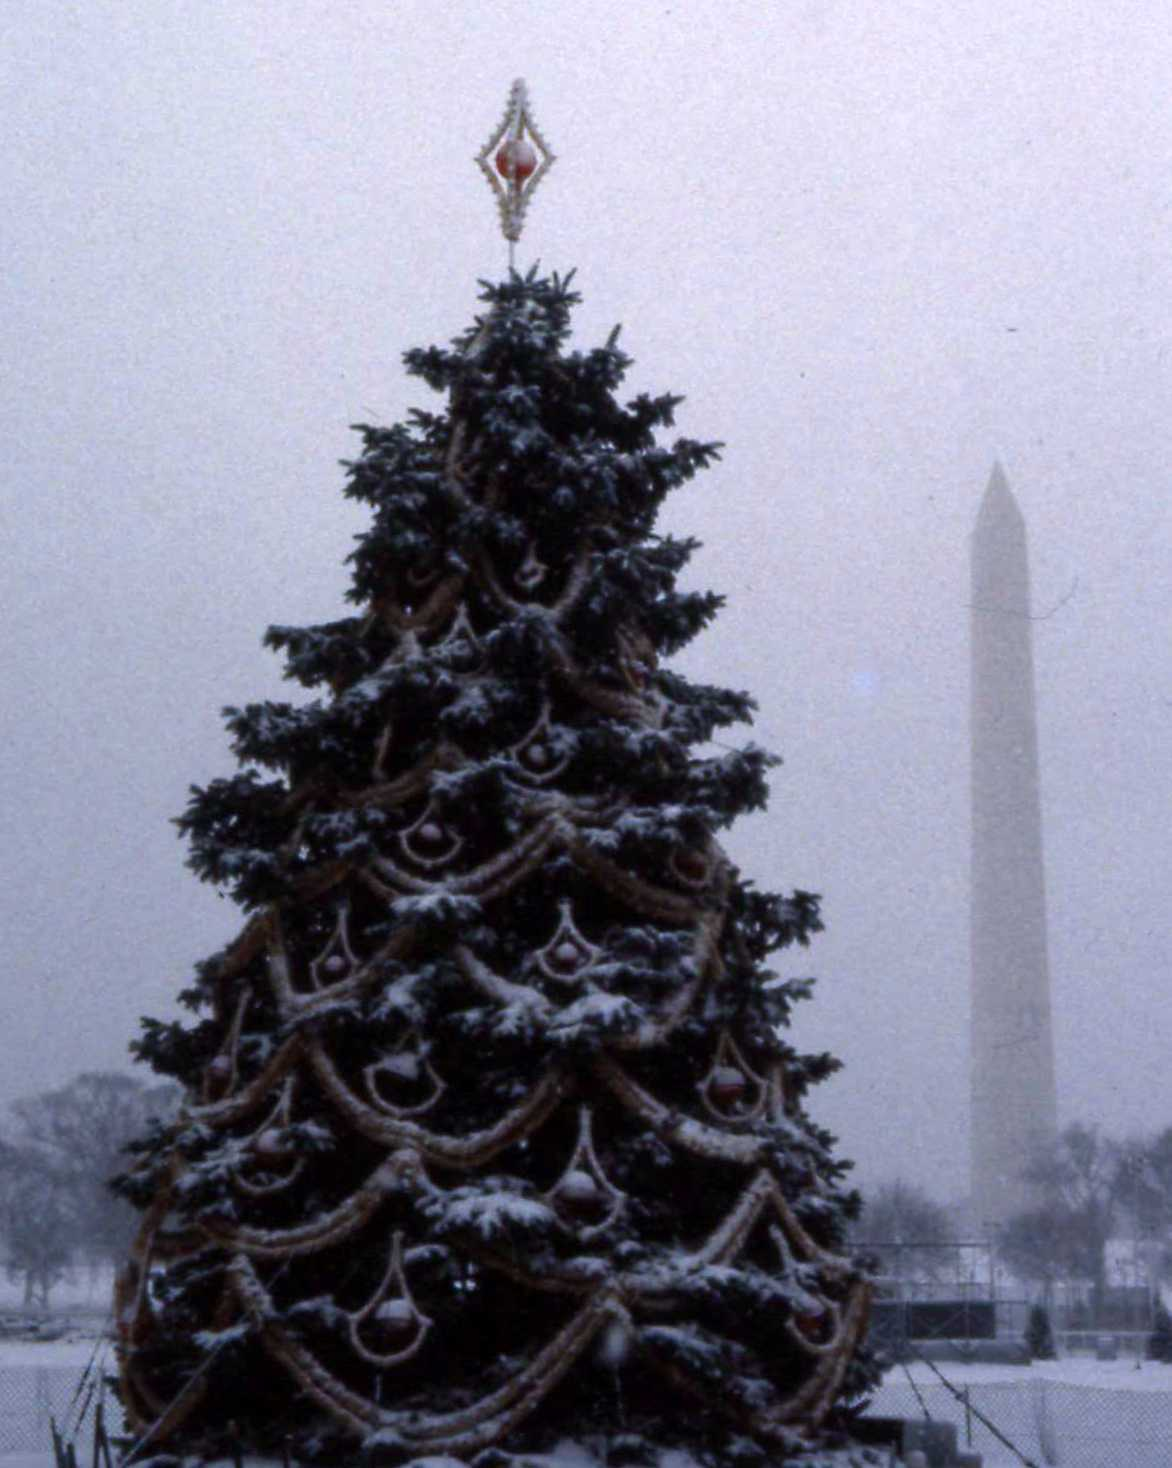 The Mathematical Tourist Christmas Tree And Monument